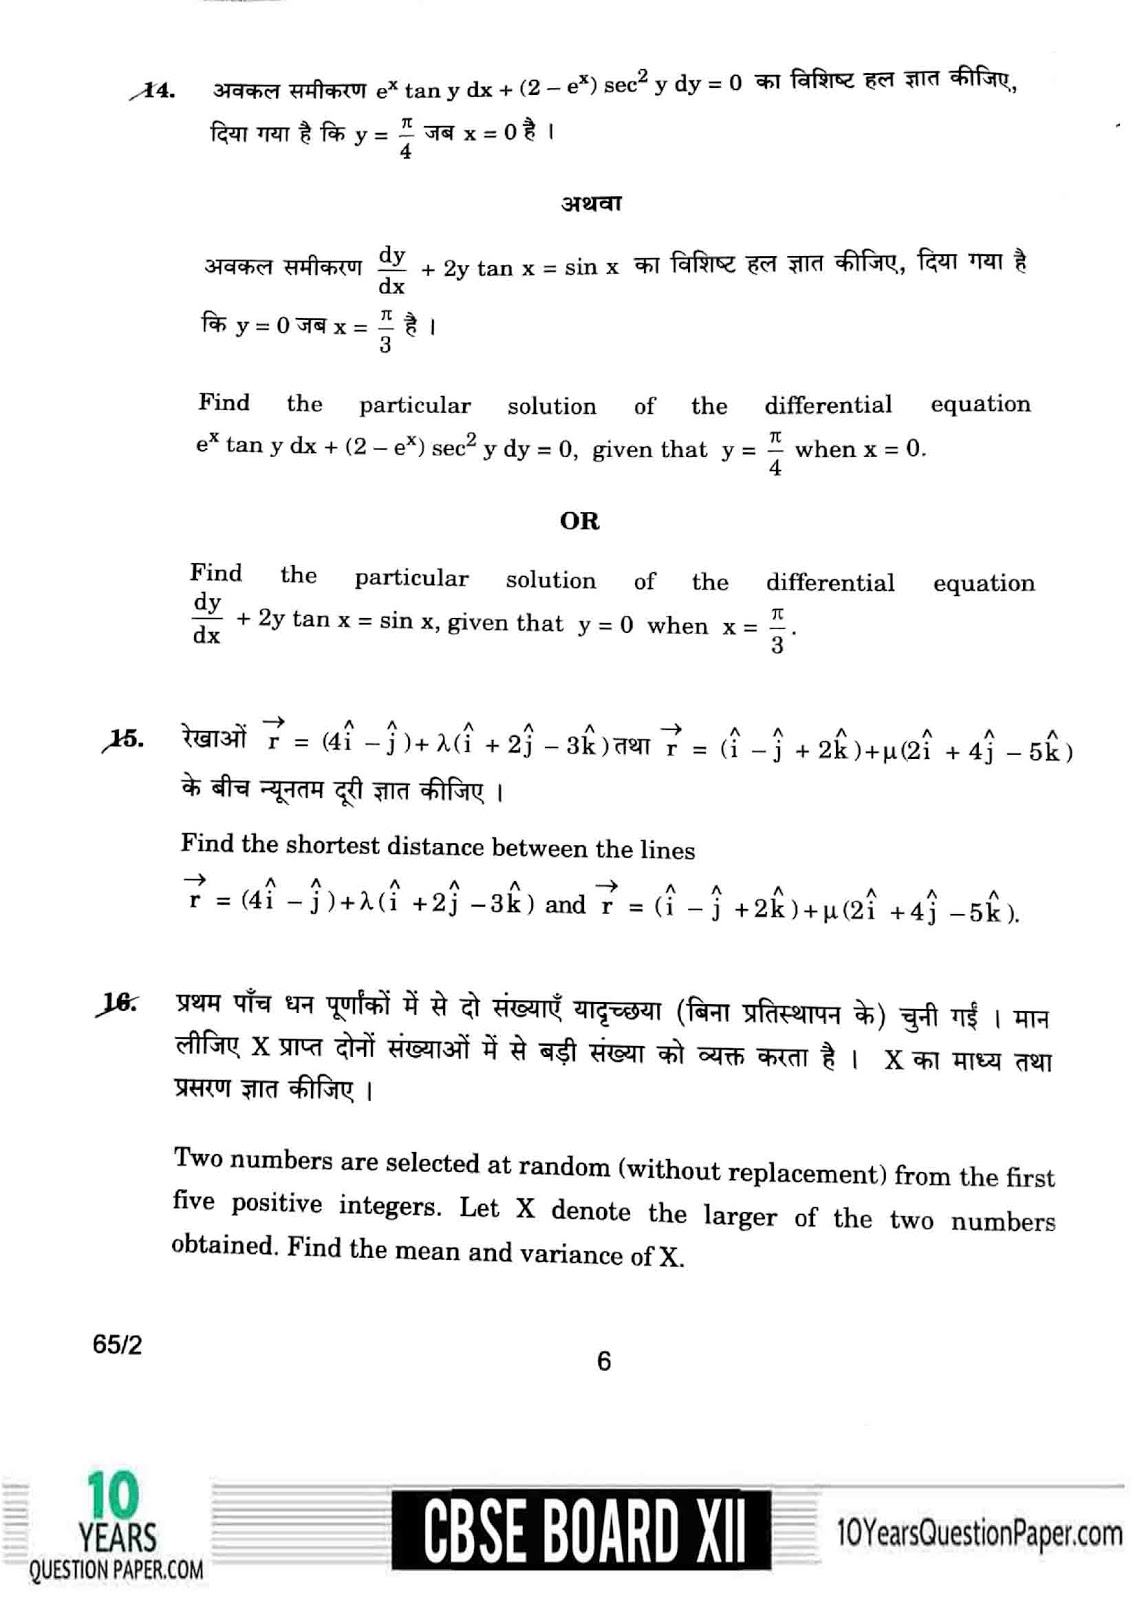 CBSE class 12 Maths 2018 question paper page-05